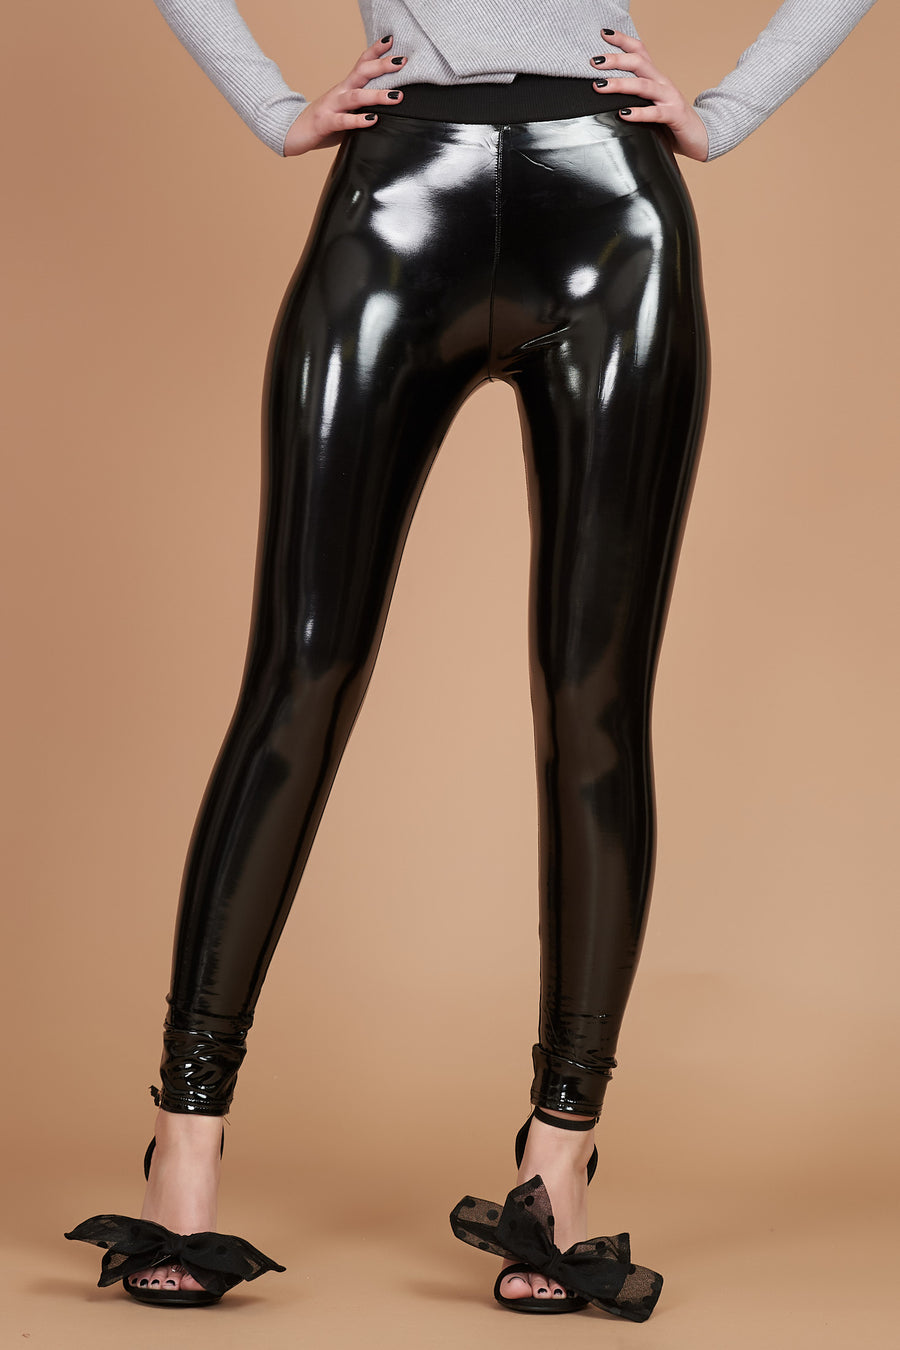 Black PVC Leggings